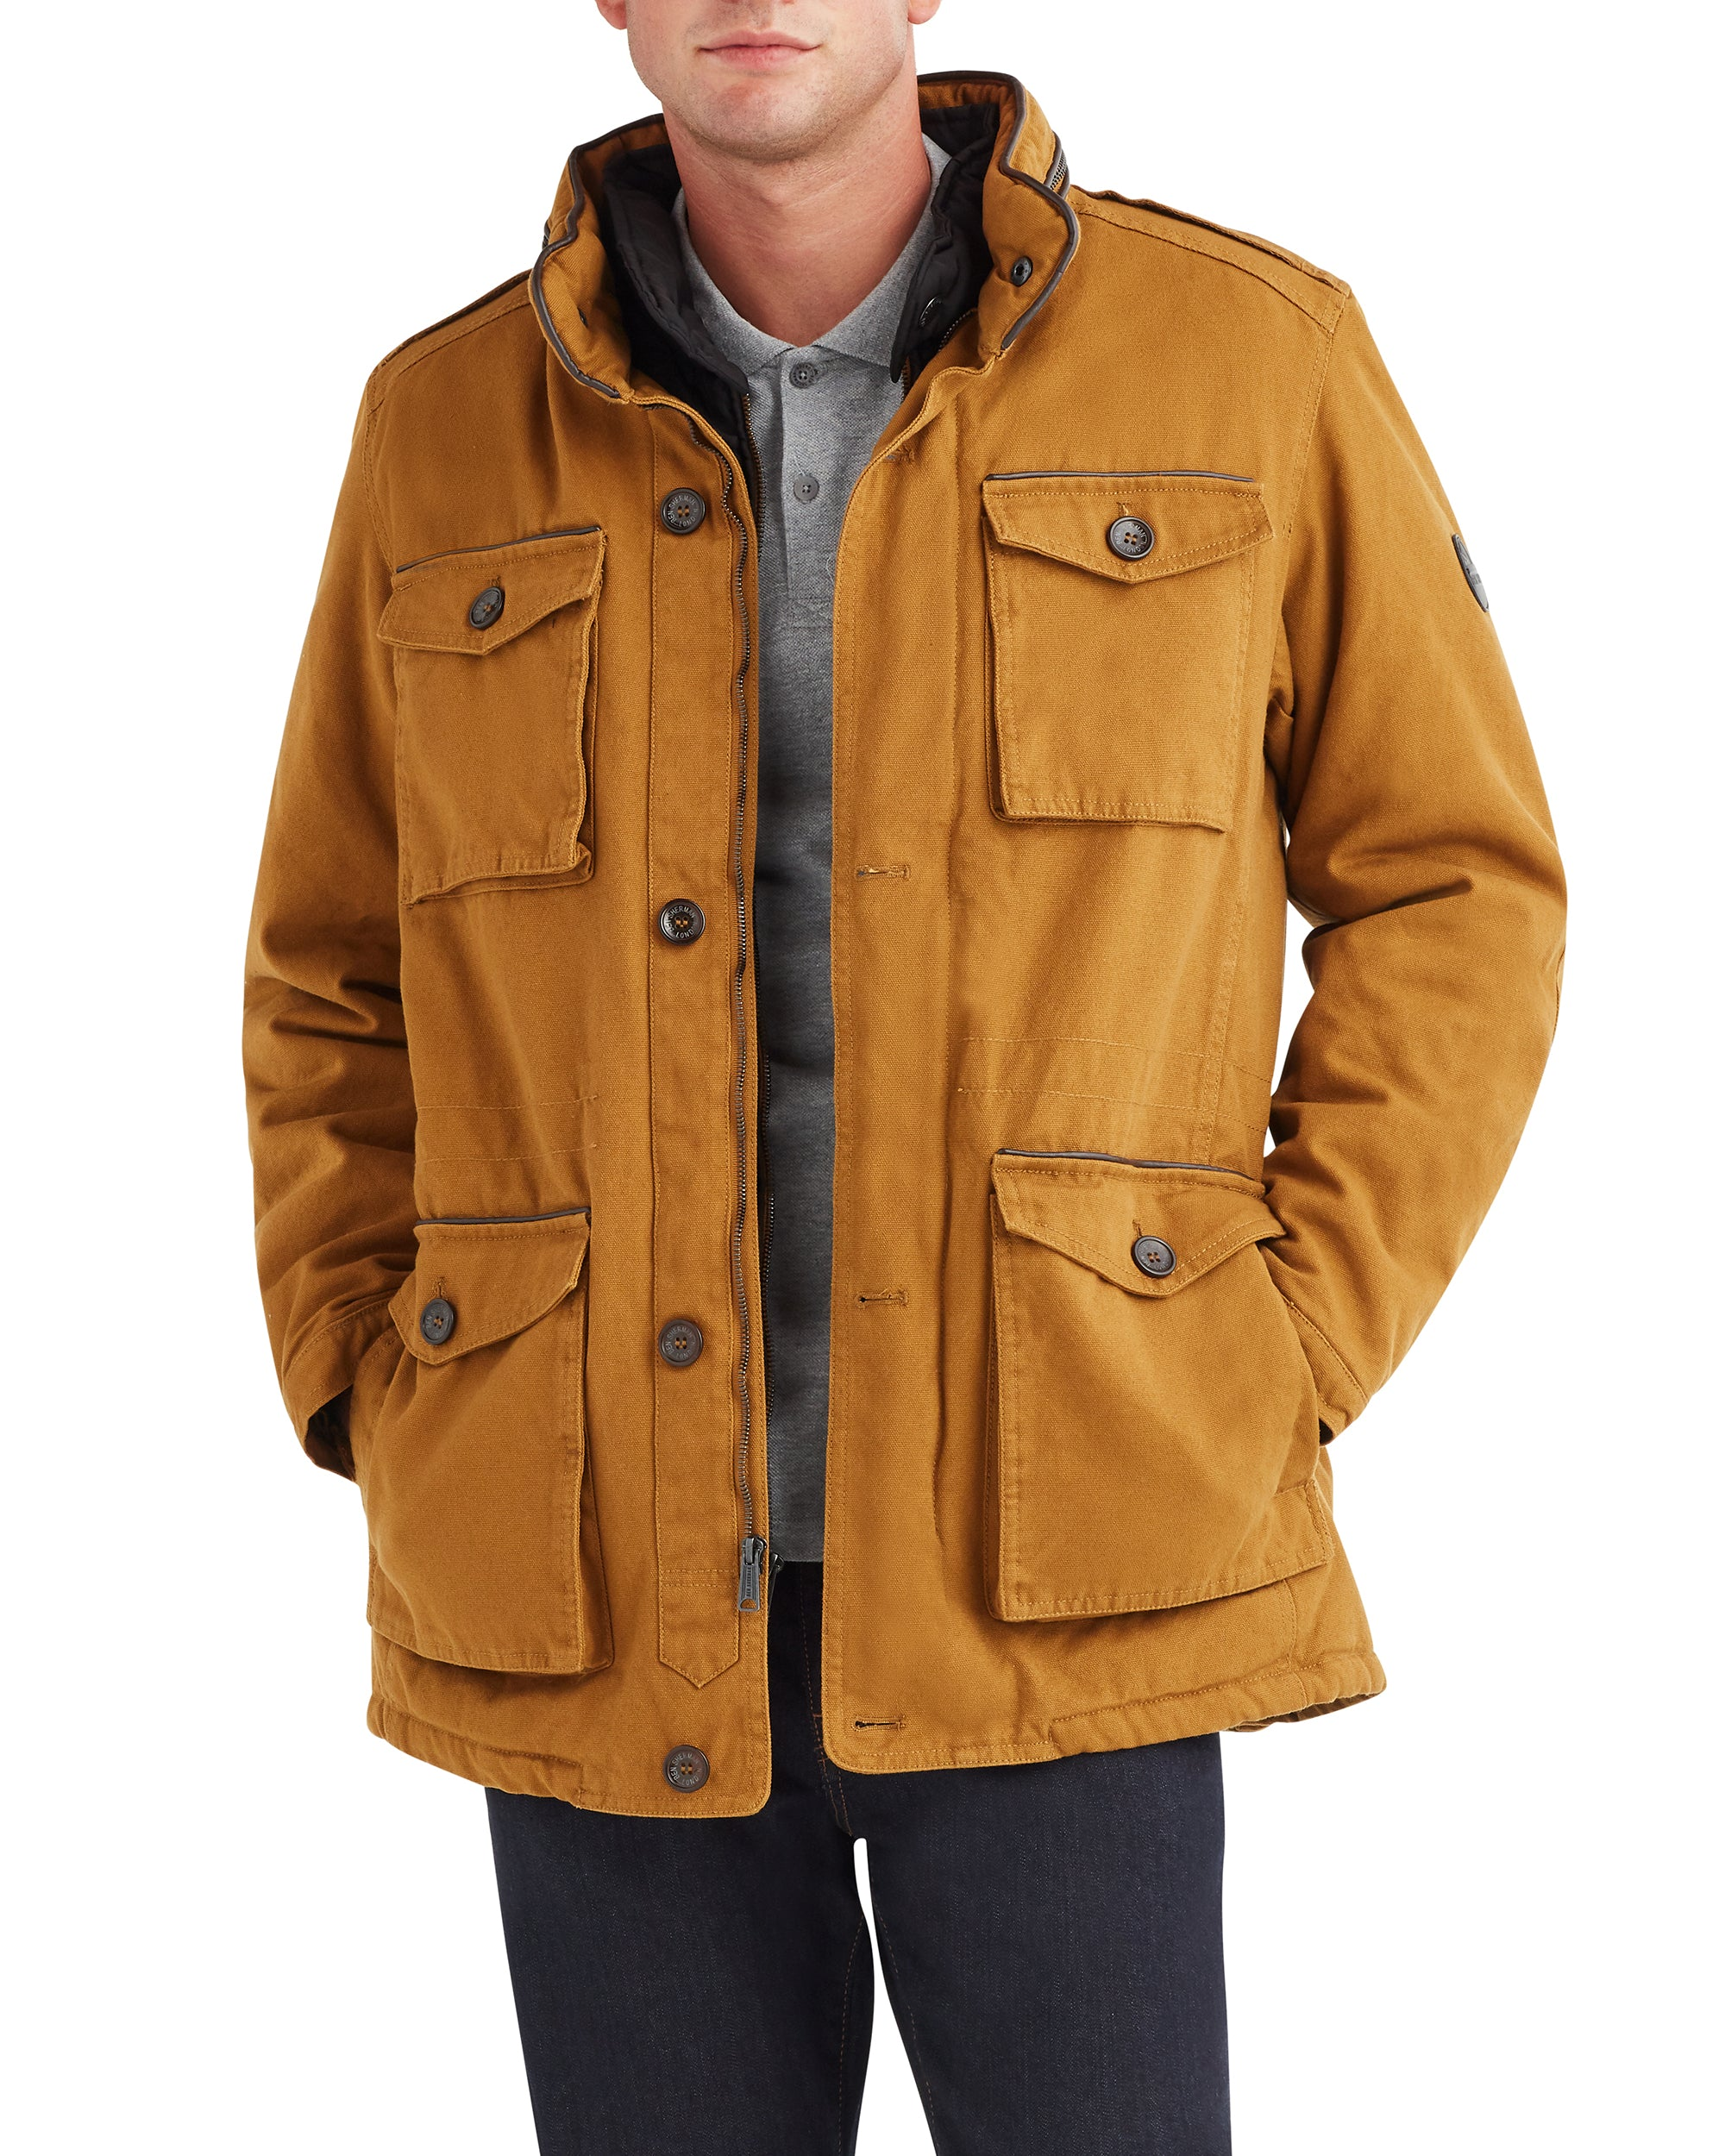 Men's Cotton Field Jacket - Dijon